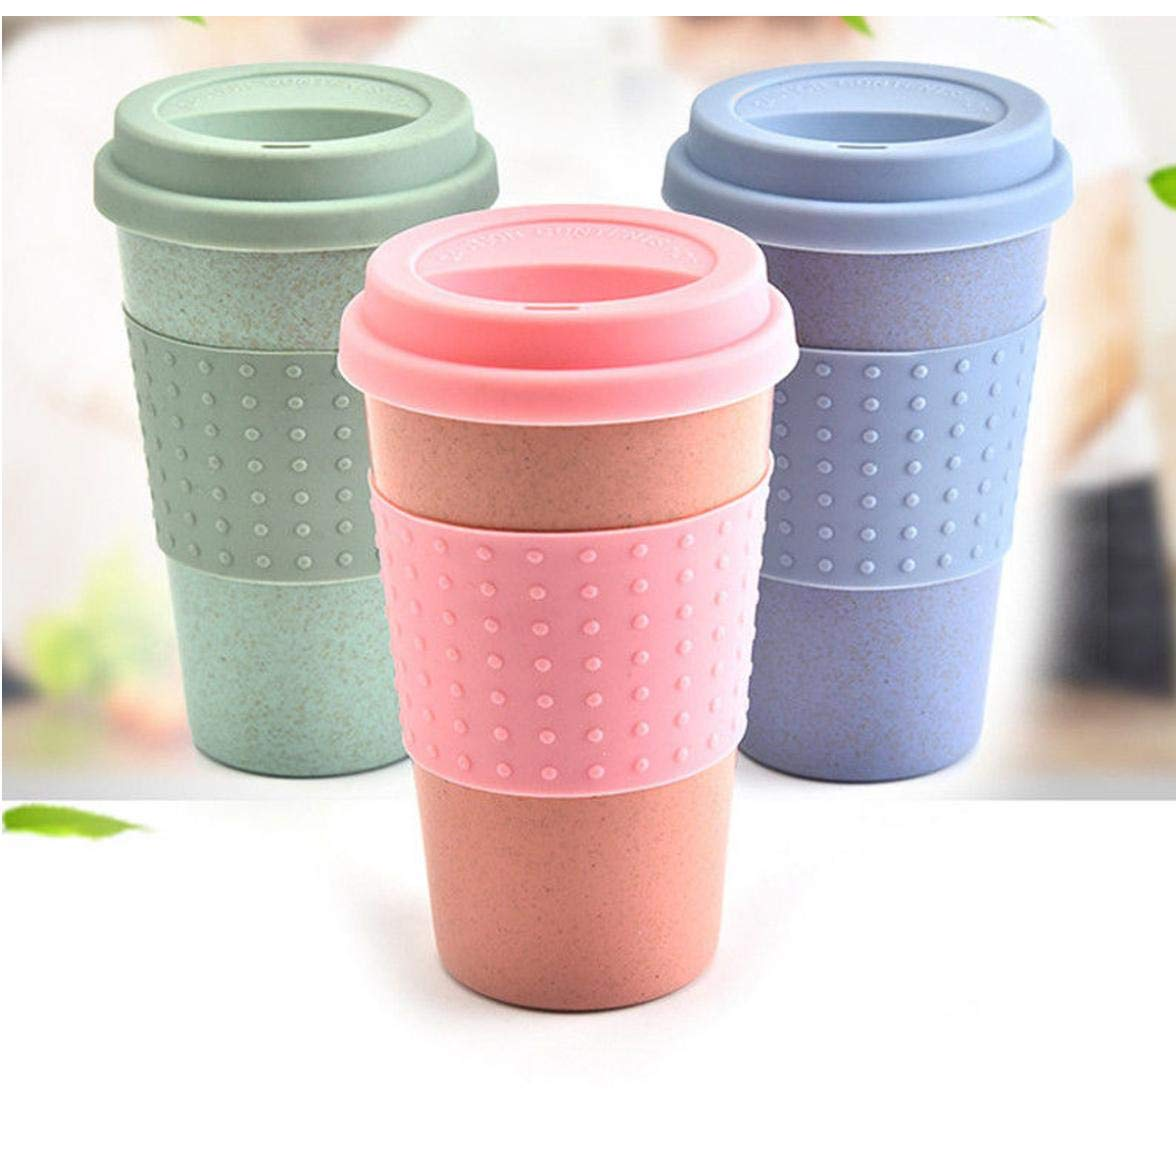 Gamloious Eco-friendly Coffee Tea Cup Wheat Straw Travel Water Drink Mug with Silicone Lid